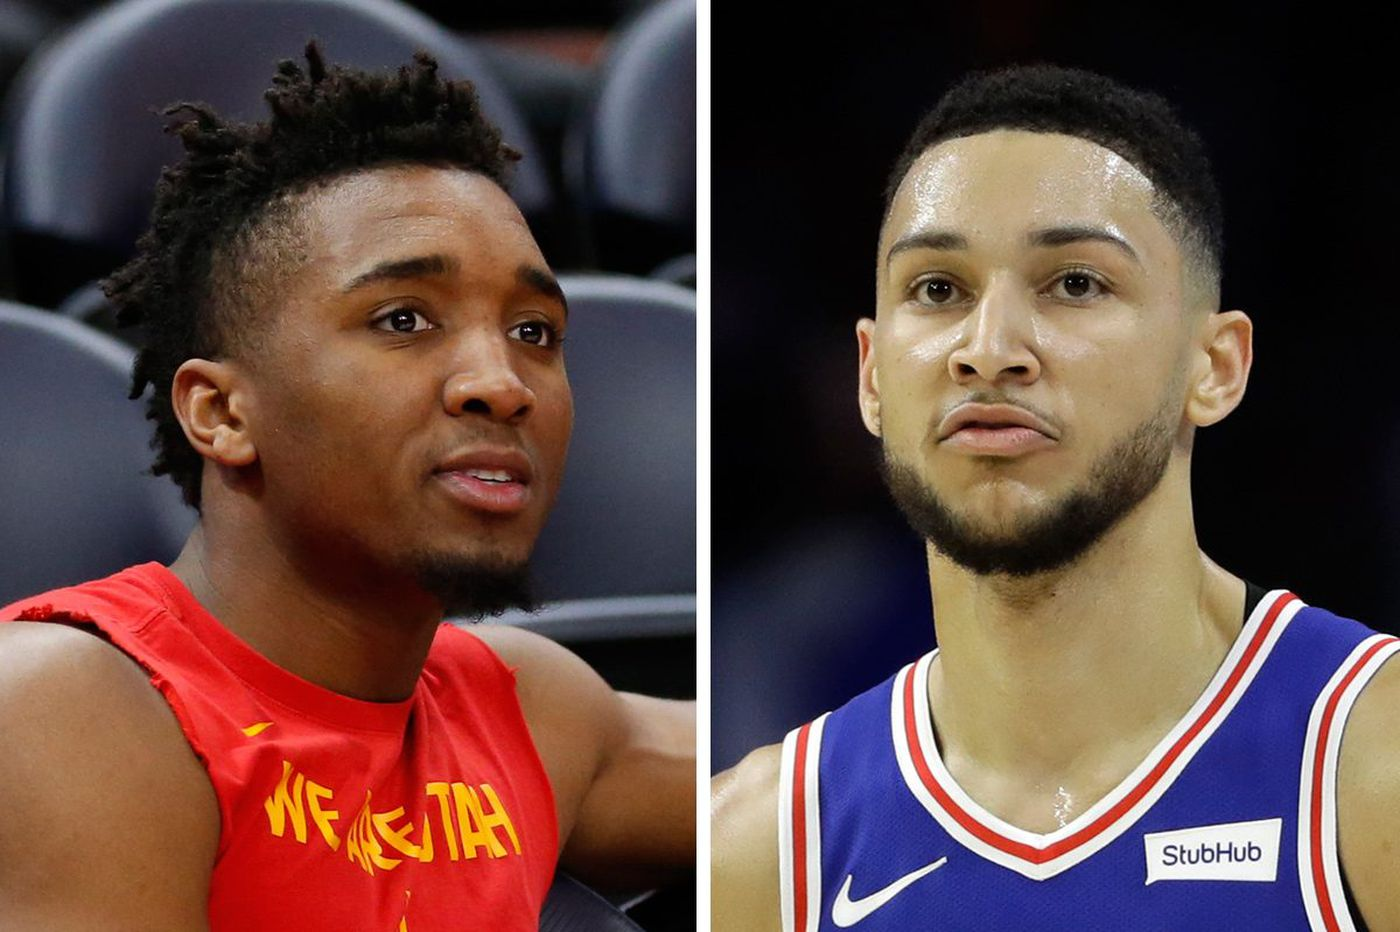 Donovan Mitchell is not letting go of his fight with Ben Simmons over Rookie of the Year